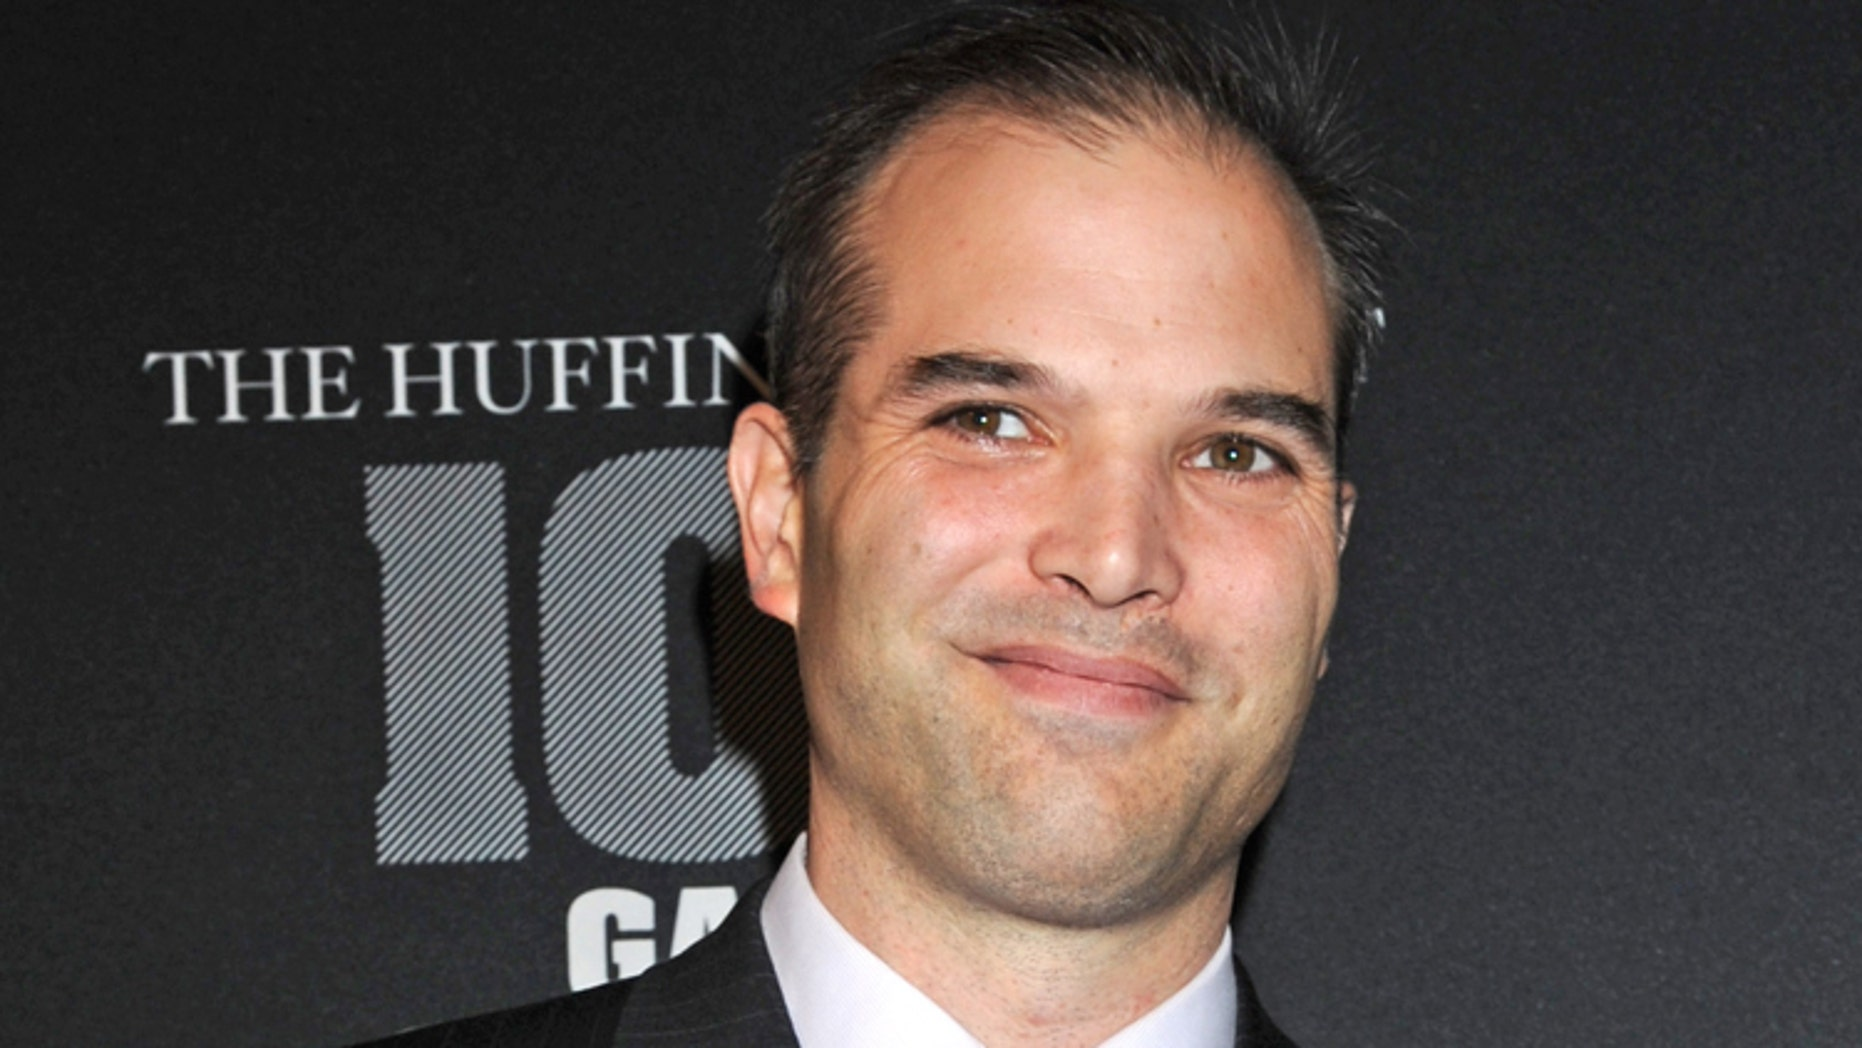 """Journalist Matt Taibbi arrives at the """"Huffington Post 2010 Game Changers Event"""", Thursday, Oct. 28, 2010, in New York. (AP Photo/ Louis Lanzano)"""